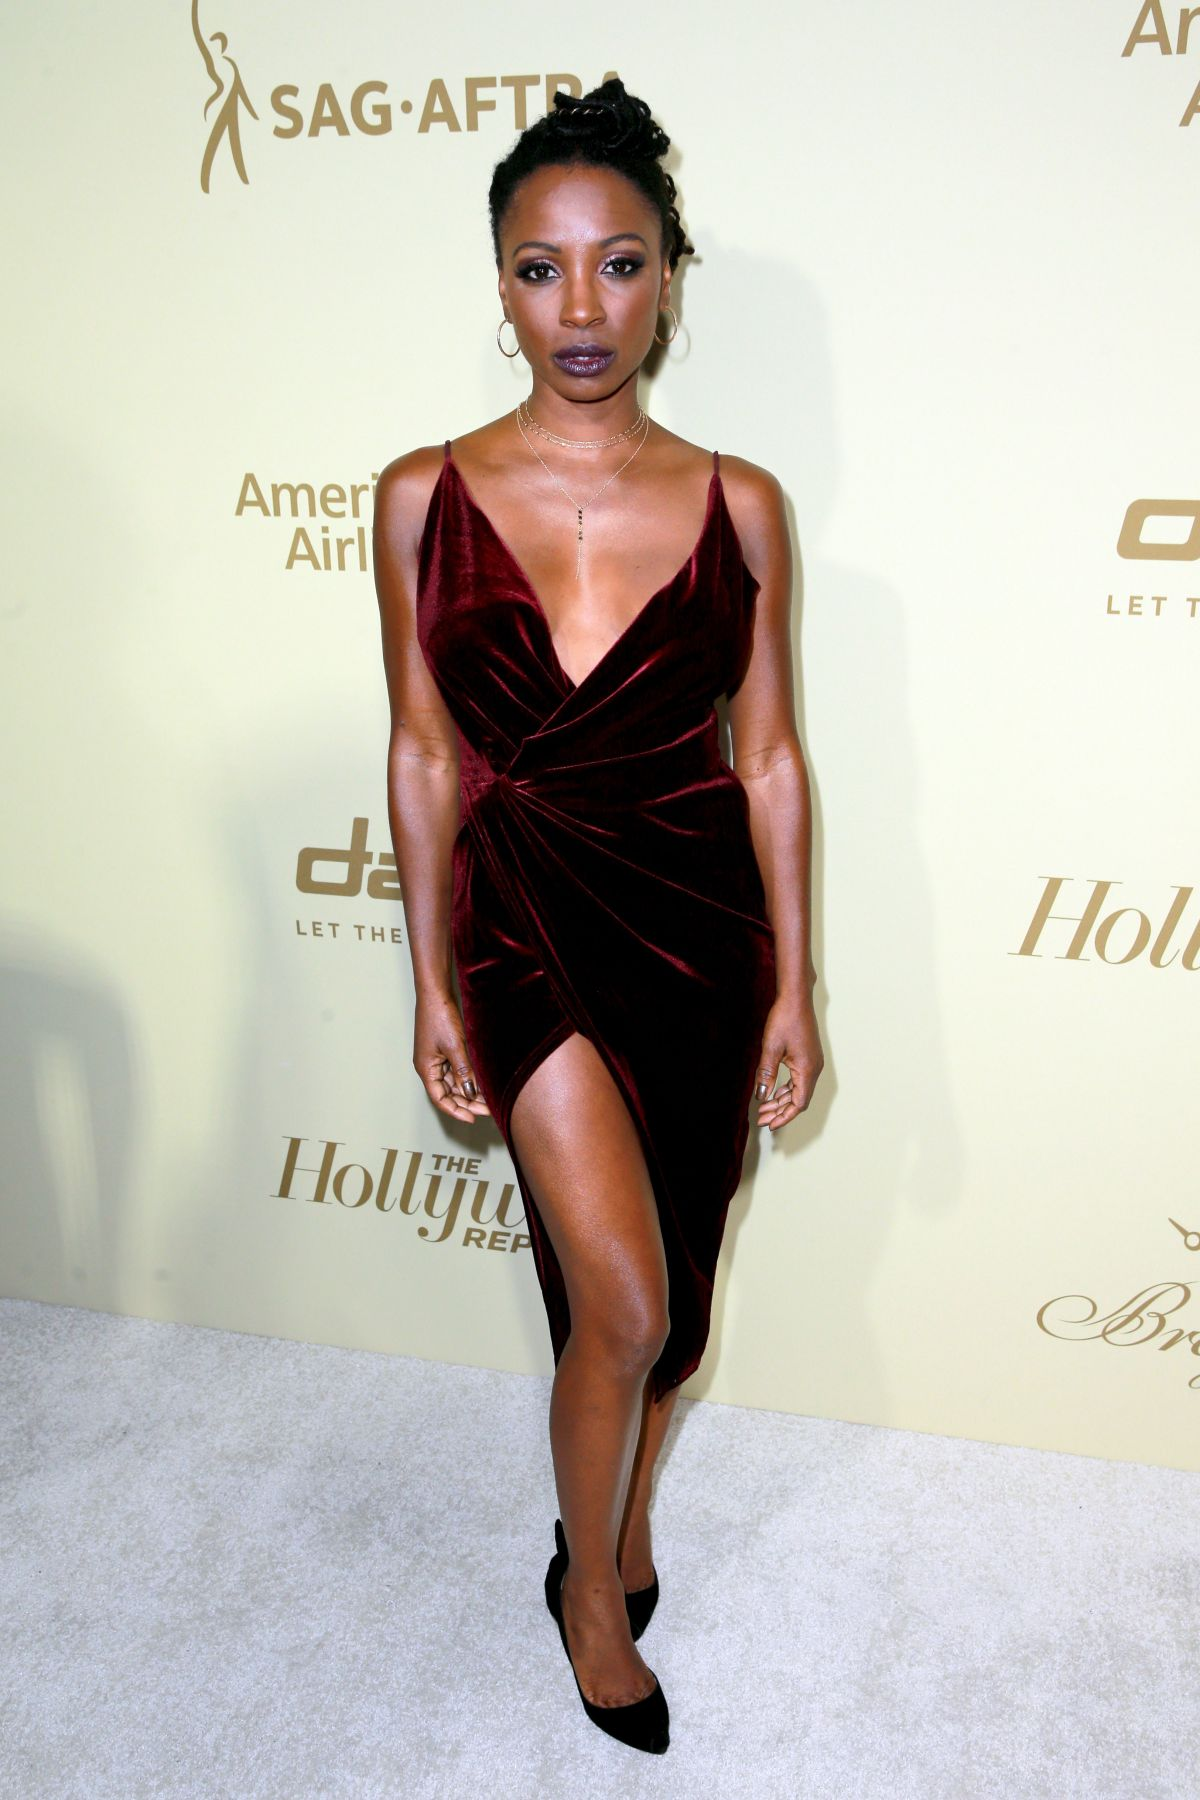 SHANOLA HAMPTON at Hollywood Reporter and Sag-aftra Nominees Night in Beverly Hills 09/14/2017